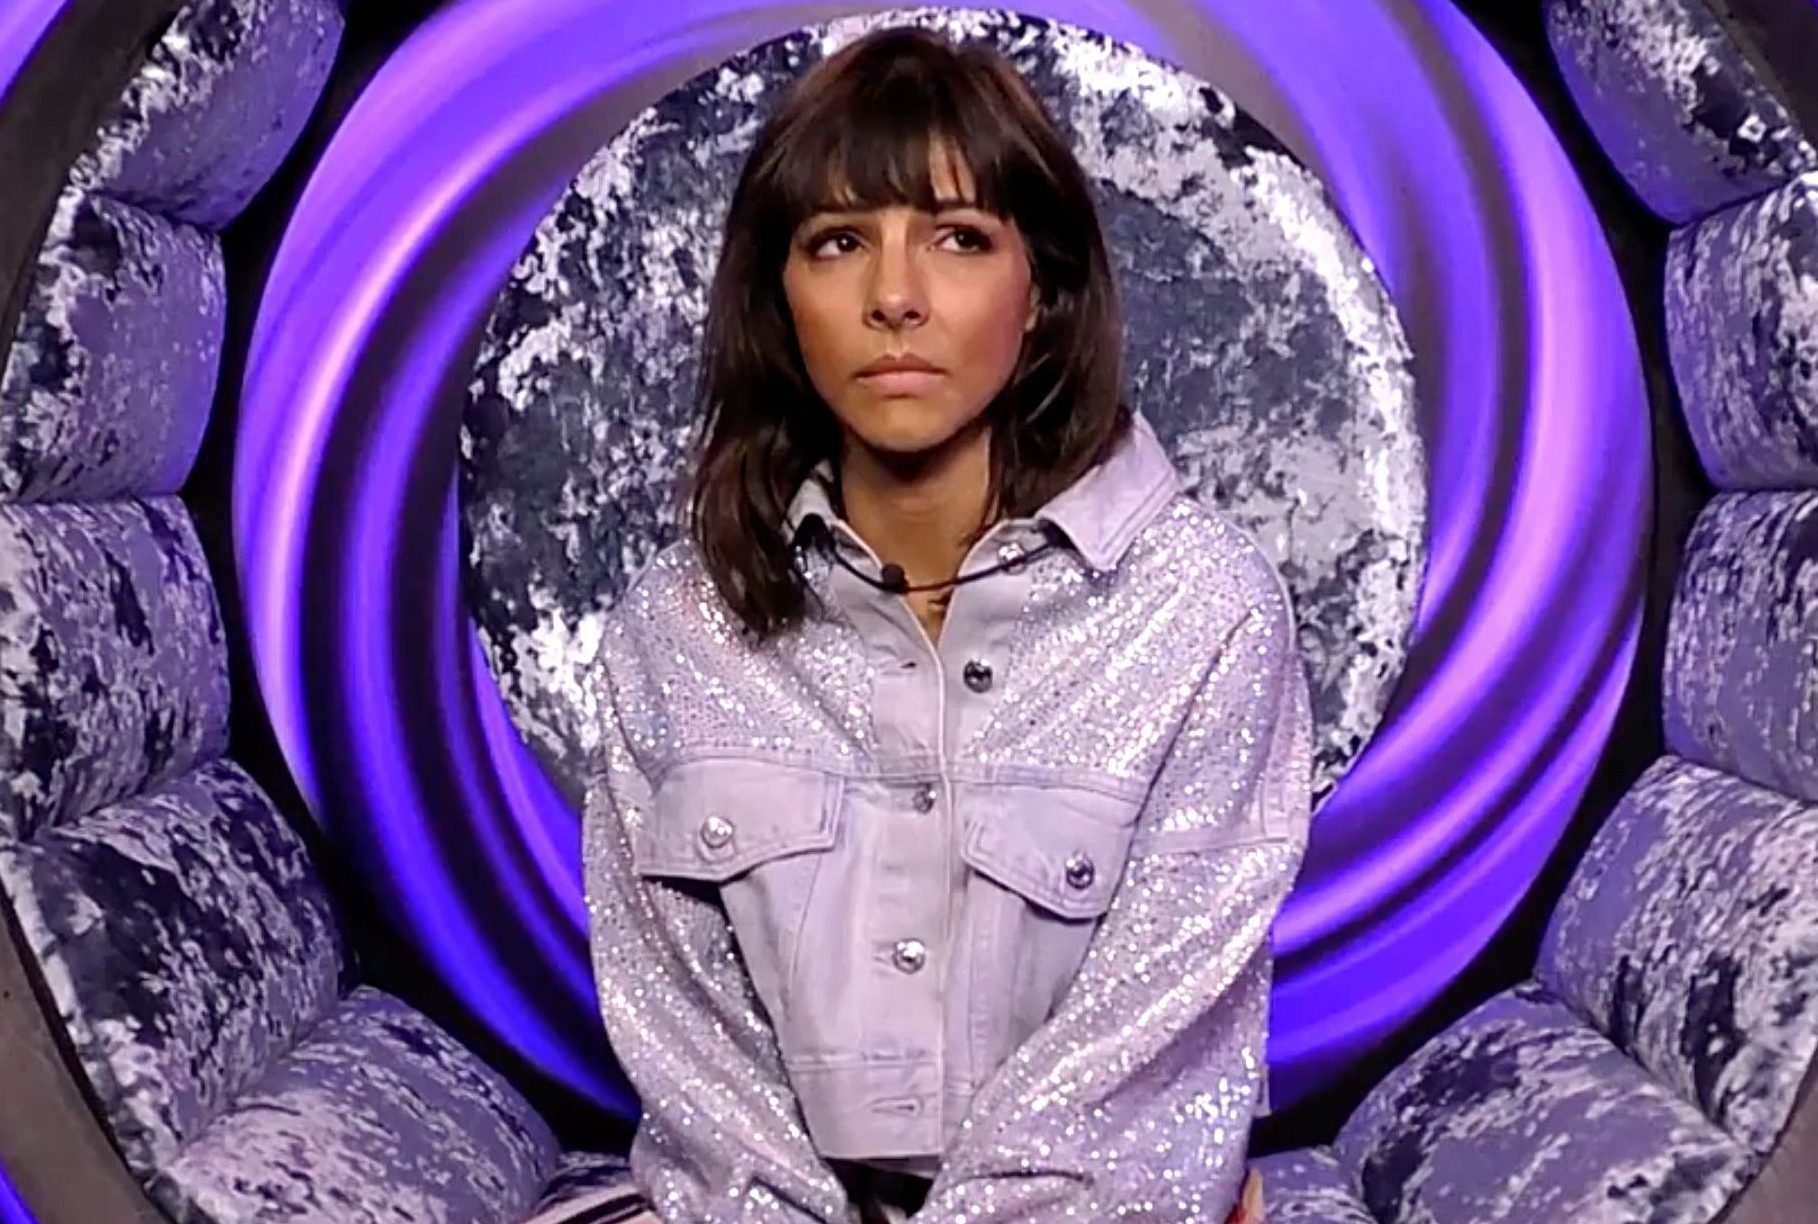 Editorial Use Only Mandatory Credit: Photo by REX (9826809al) Roxanne Pallett in the diary room 'Celebrity Big Brother' TV show, Series 22, Elstree Studios, Hertfordshire, UK - 29 Aug 2018